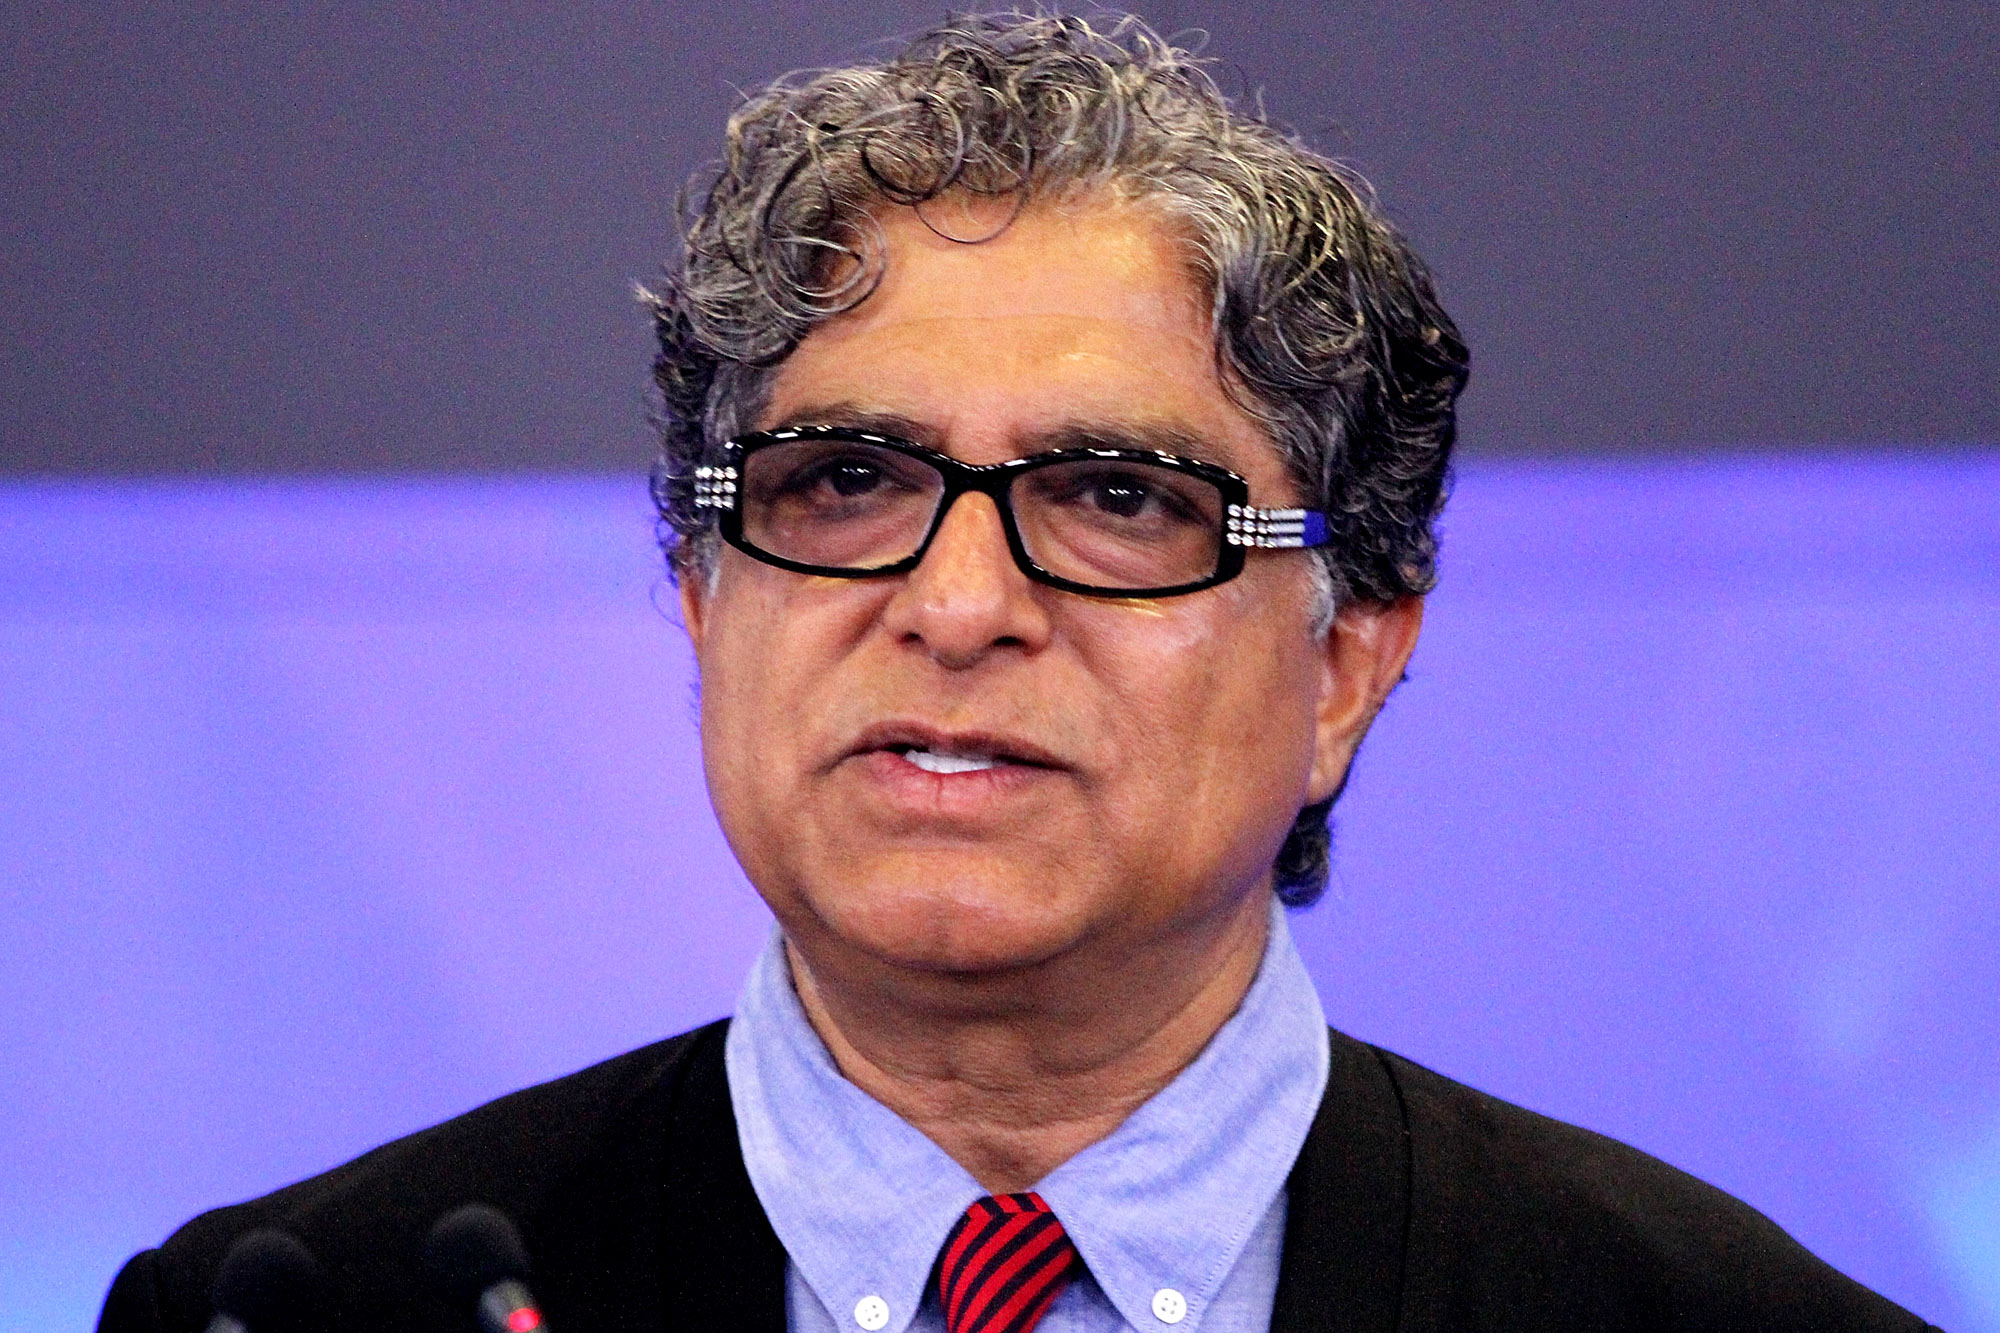 Holistic health guru Deepak Chopra Photo: Laura Cavanaugh/Getty Images